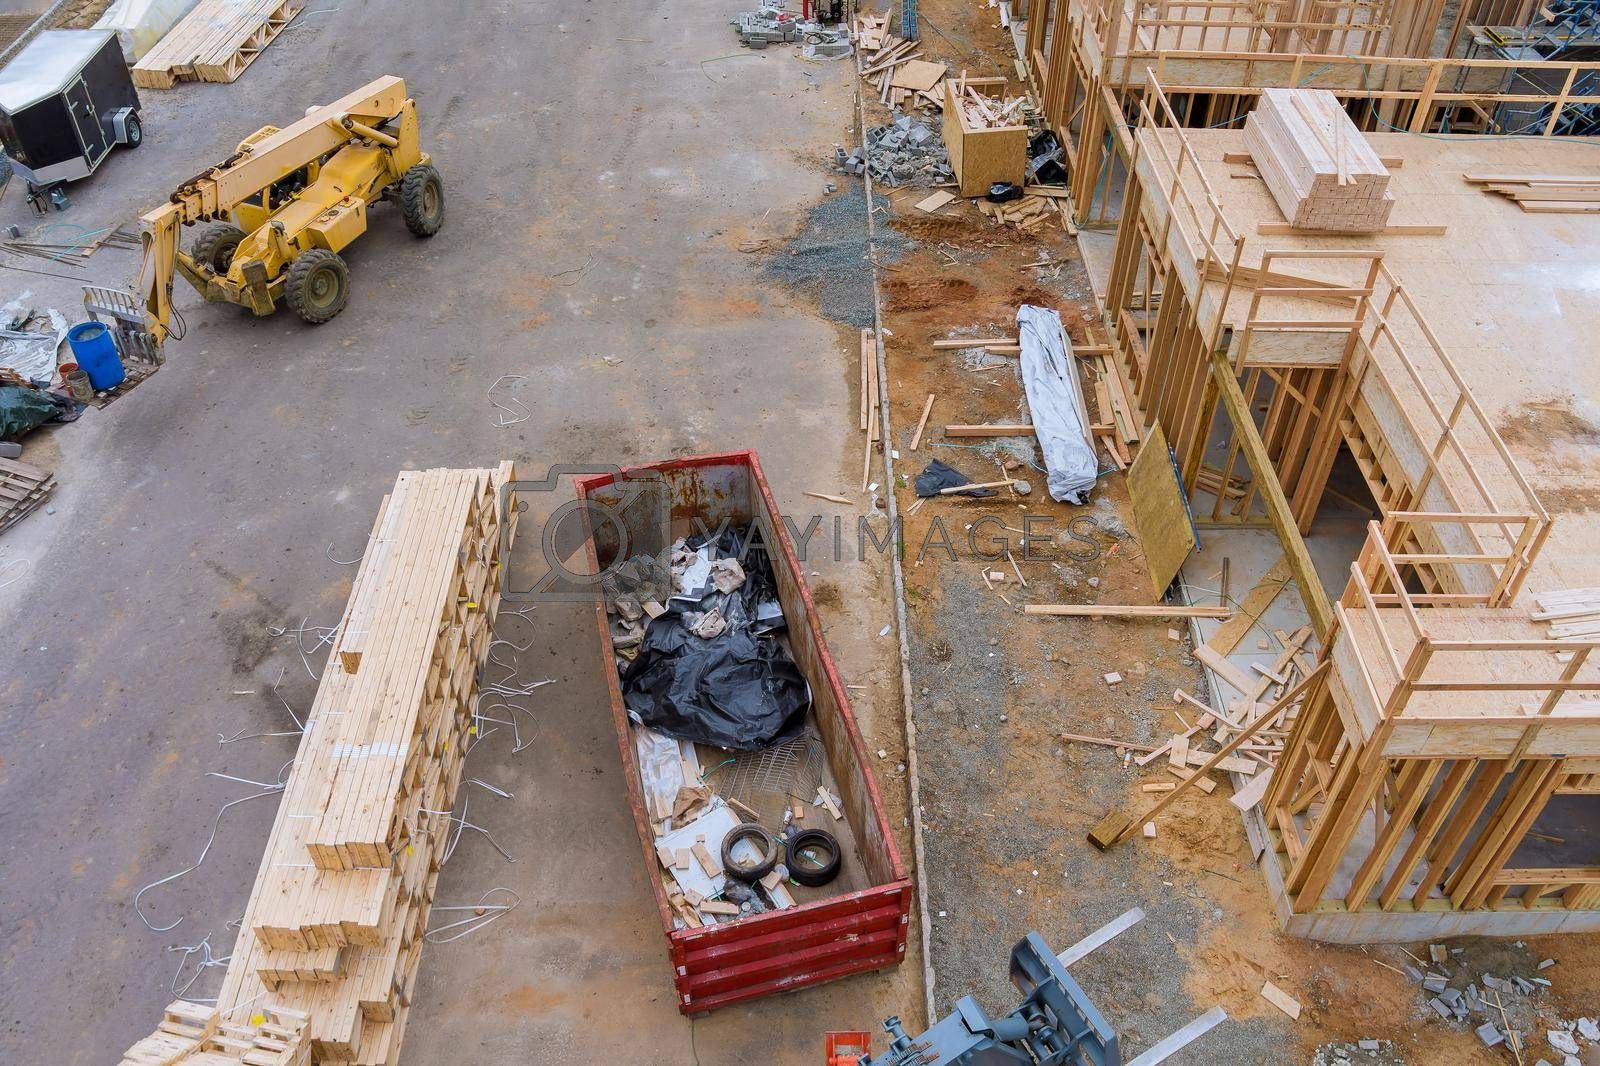 New apartments under construction home residential building development a wooden building materials stack of boards wood frame beam construction on metal container house renovation